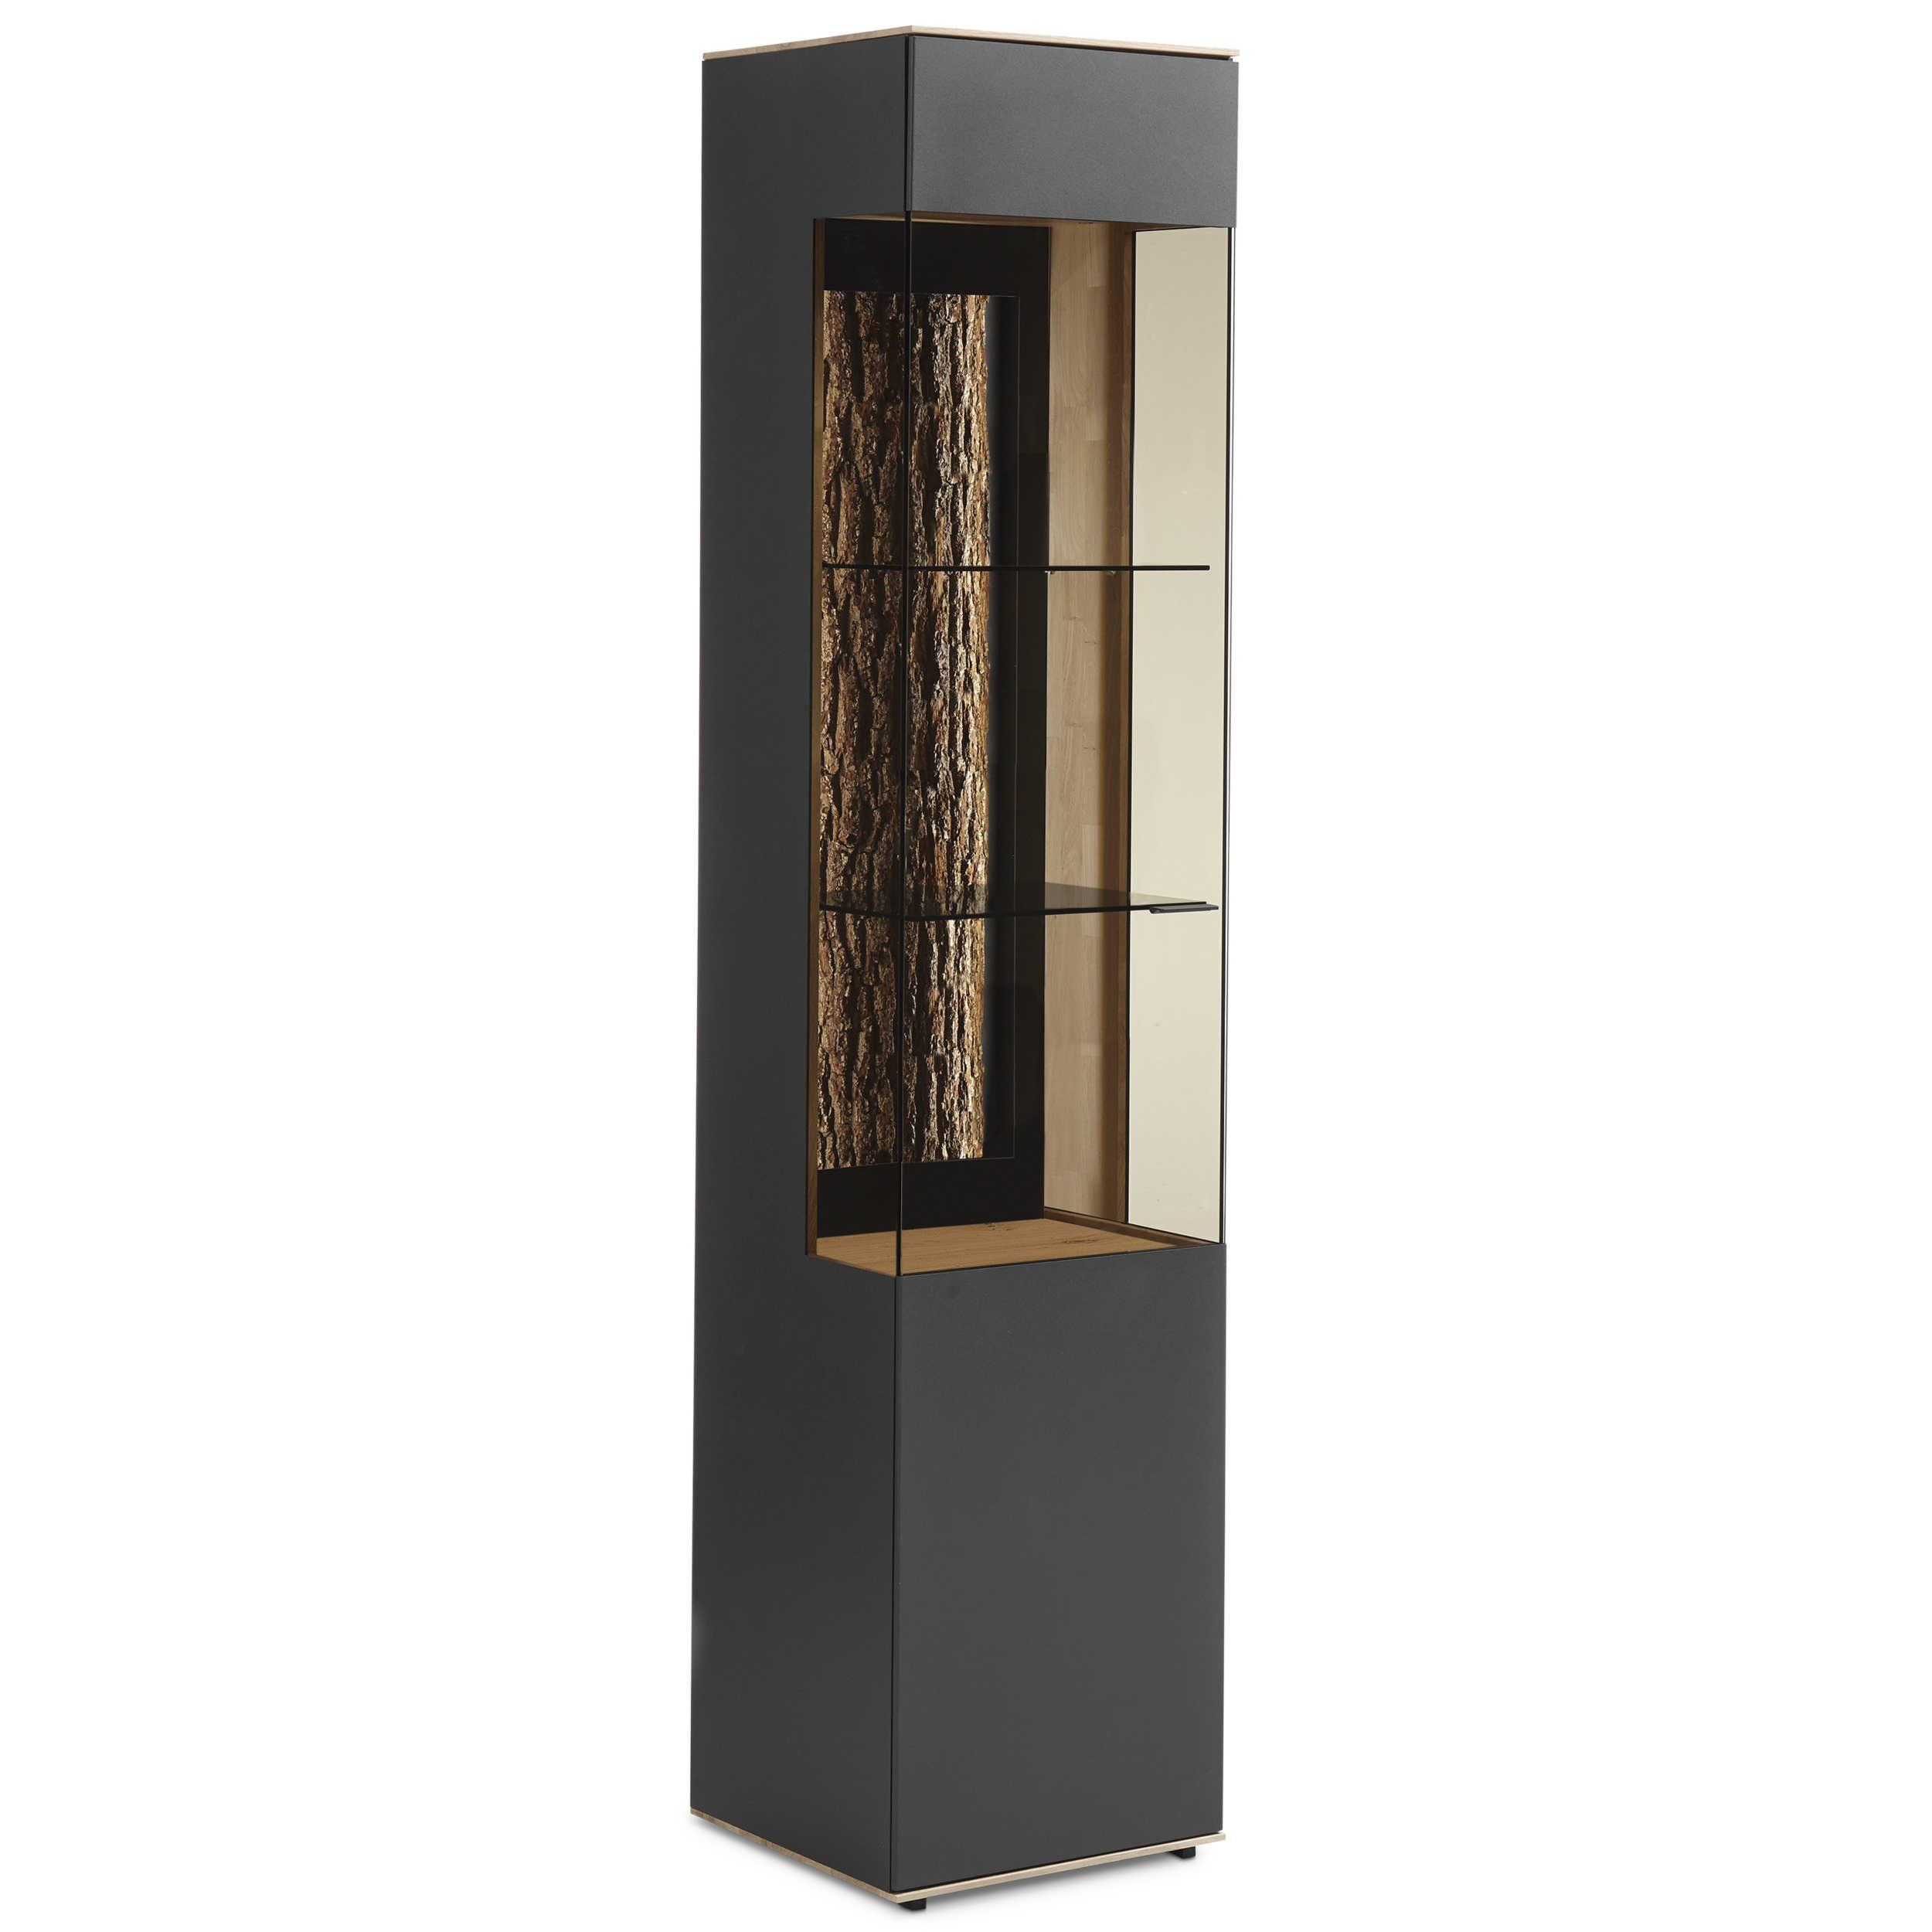 Esszimmer Vitrinen Vitrine Runa In 2019 Design Modern Furniture Furniture Und